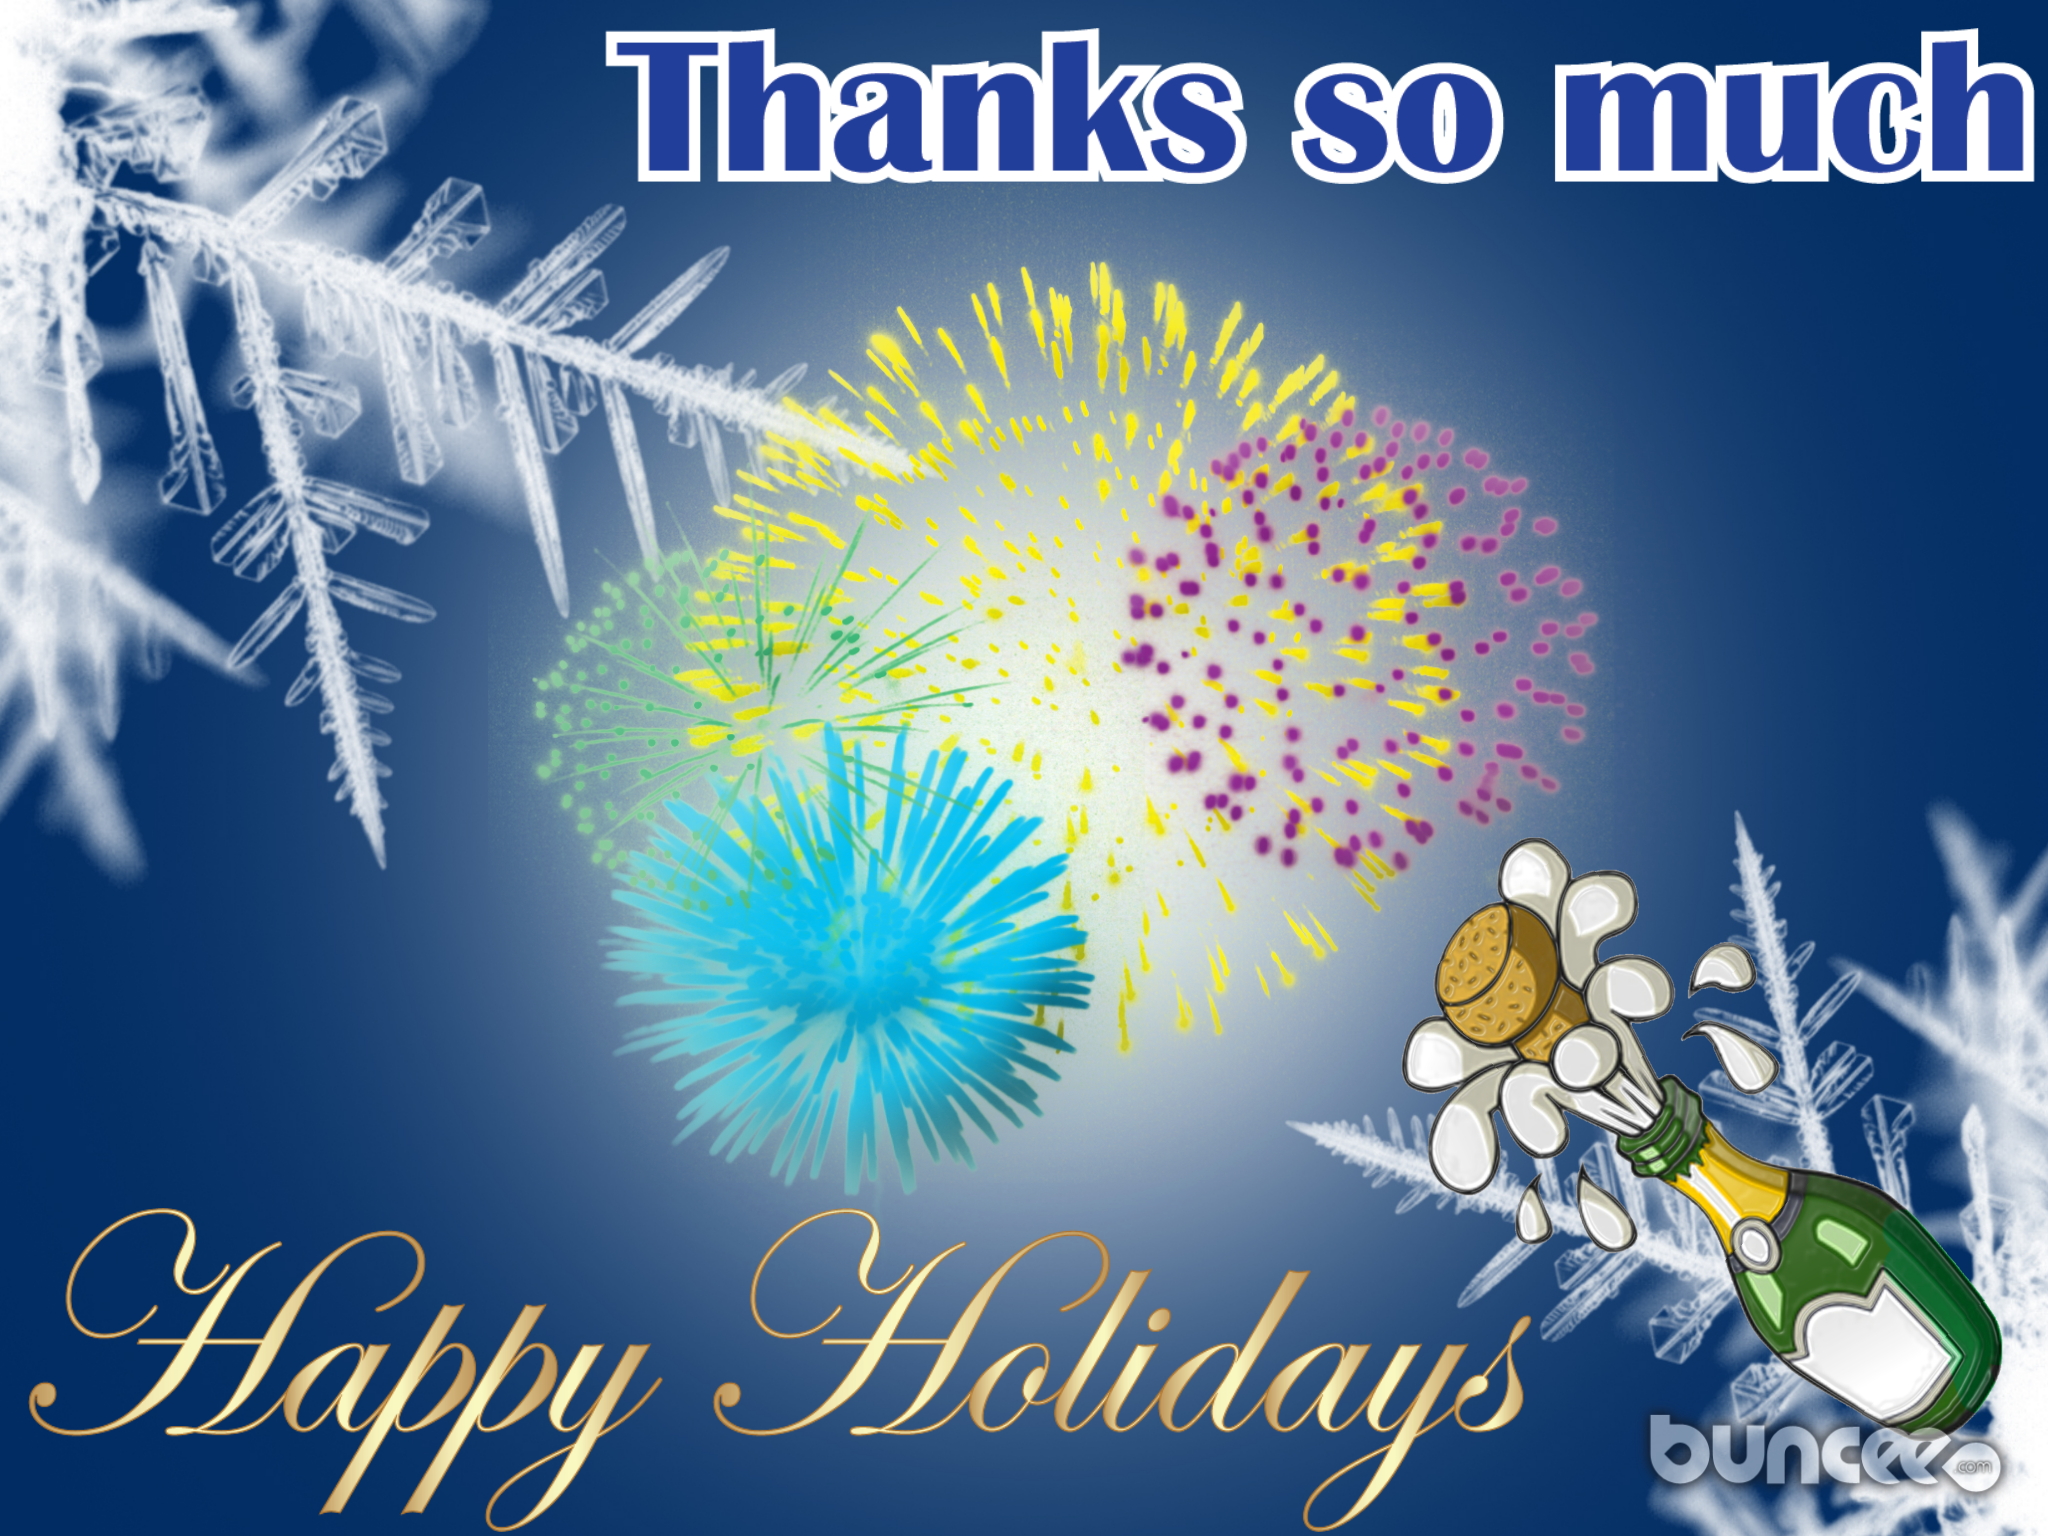 Happy Holidays Buncee Blog